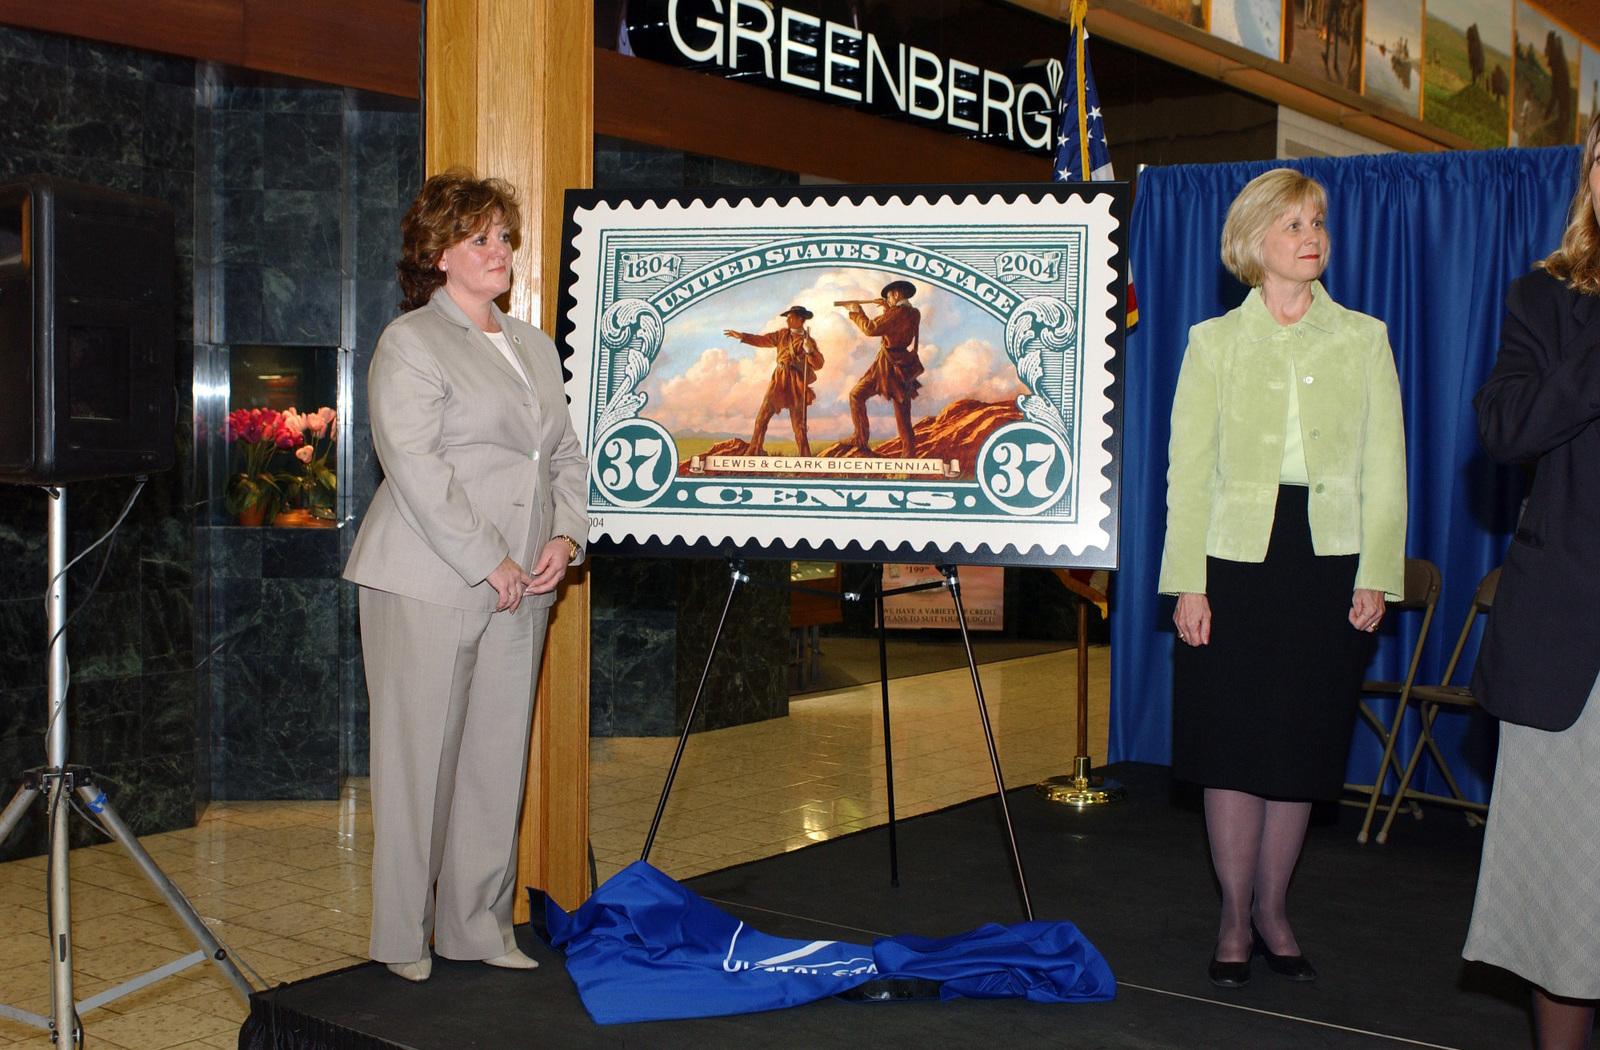 Susan LaChance (left), of the United States Postal Service (USPS) along with a representative from the Iowa Governors Office unveil one of three new stamps honoring US Army (USA) Captain (CPT) Meriwether Lewis and CPT William Clark, the leaders of the 1804-1806 Lewis and Clark expedition. The stamps were simultaneously unveiled in 11 states along the trail of the expedition. Sioux City, Iowa is where Sergeant Floyd, the only person to die on the expedition, is buried